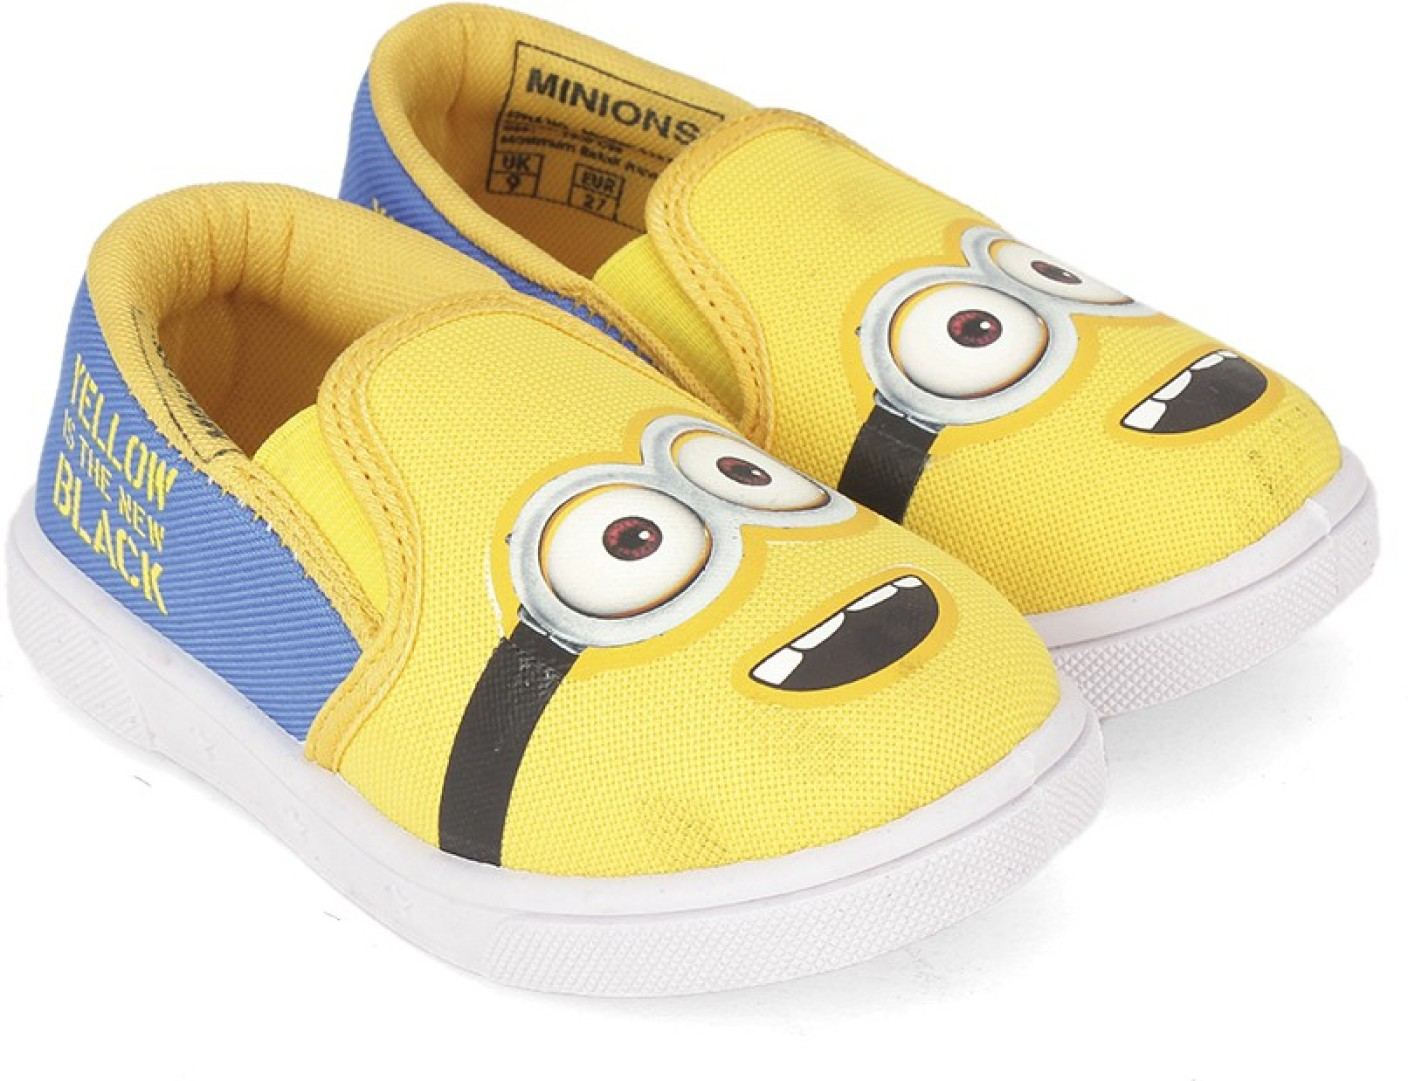 Minions Shoes Buy Online